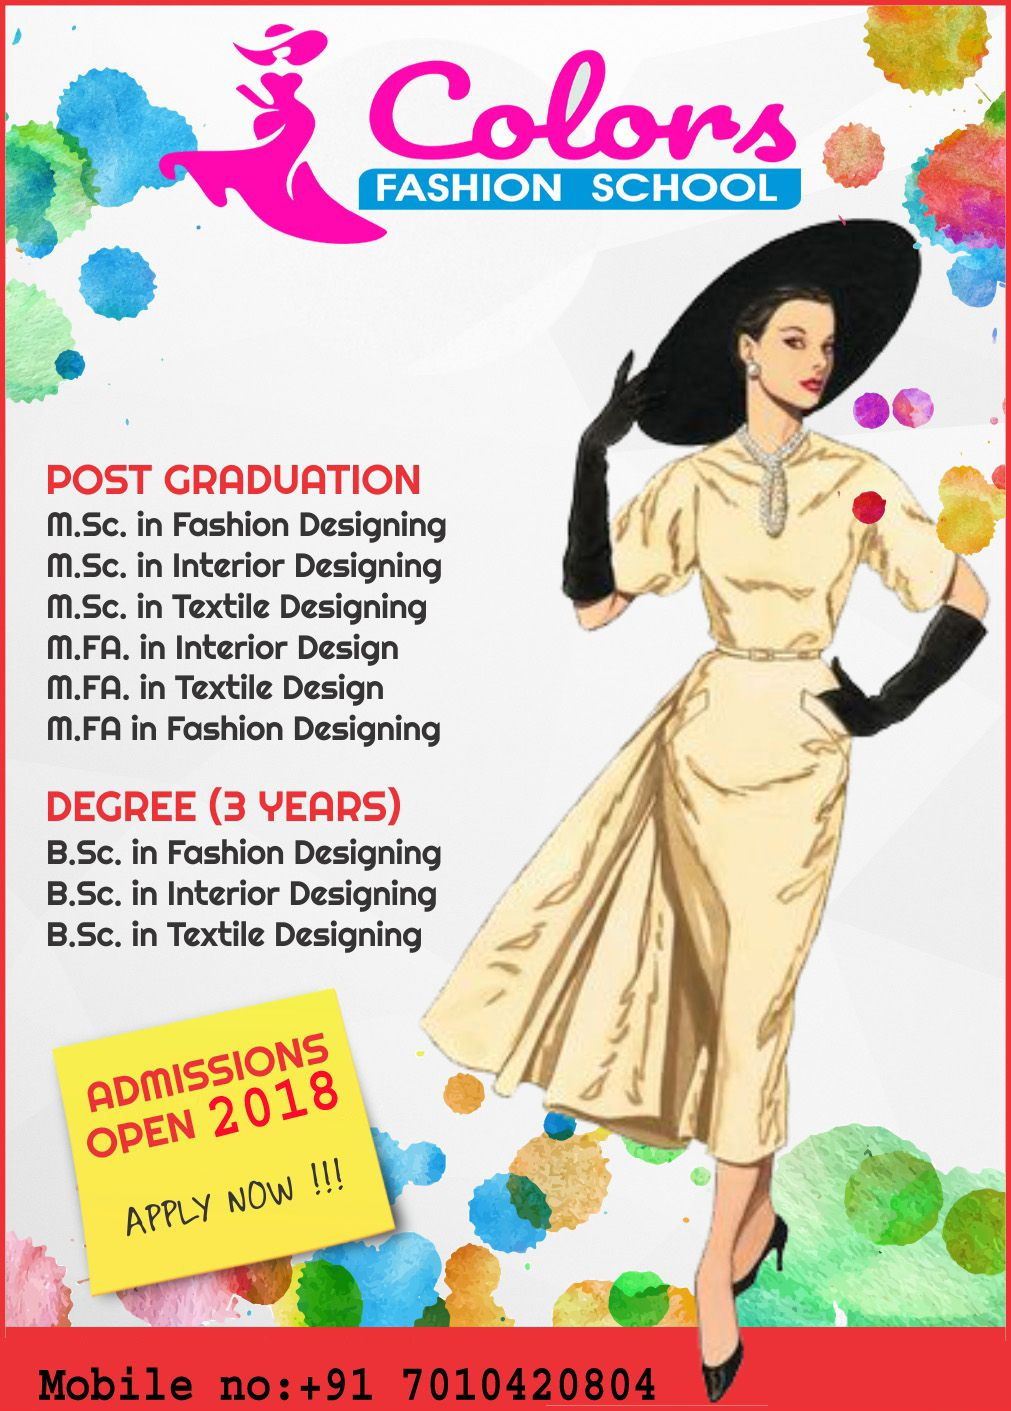 An Offering At Three Levels Namely 6 Months Fast Track Fashion Designing Course In Chen Fashion Designing Course Fashion Designing Institute Technology Fashion